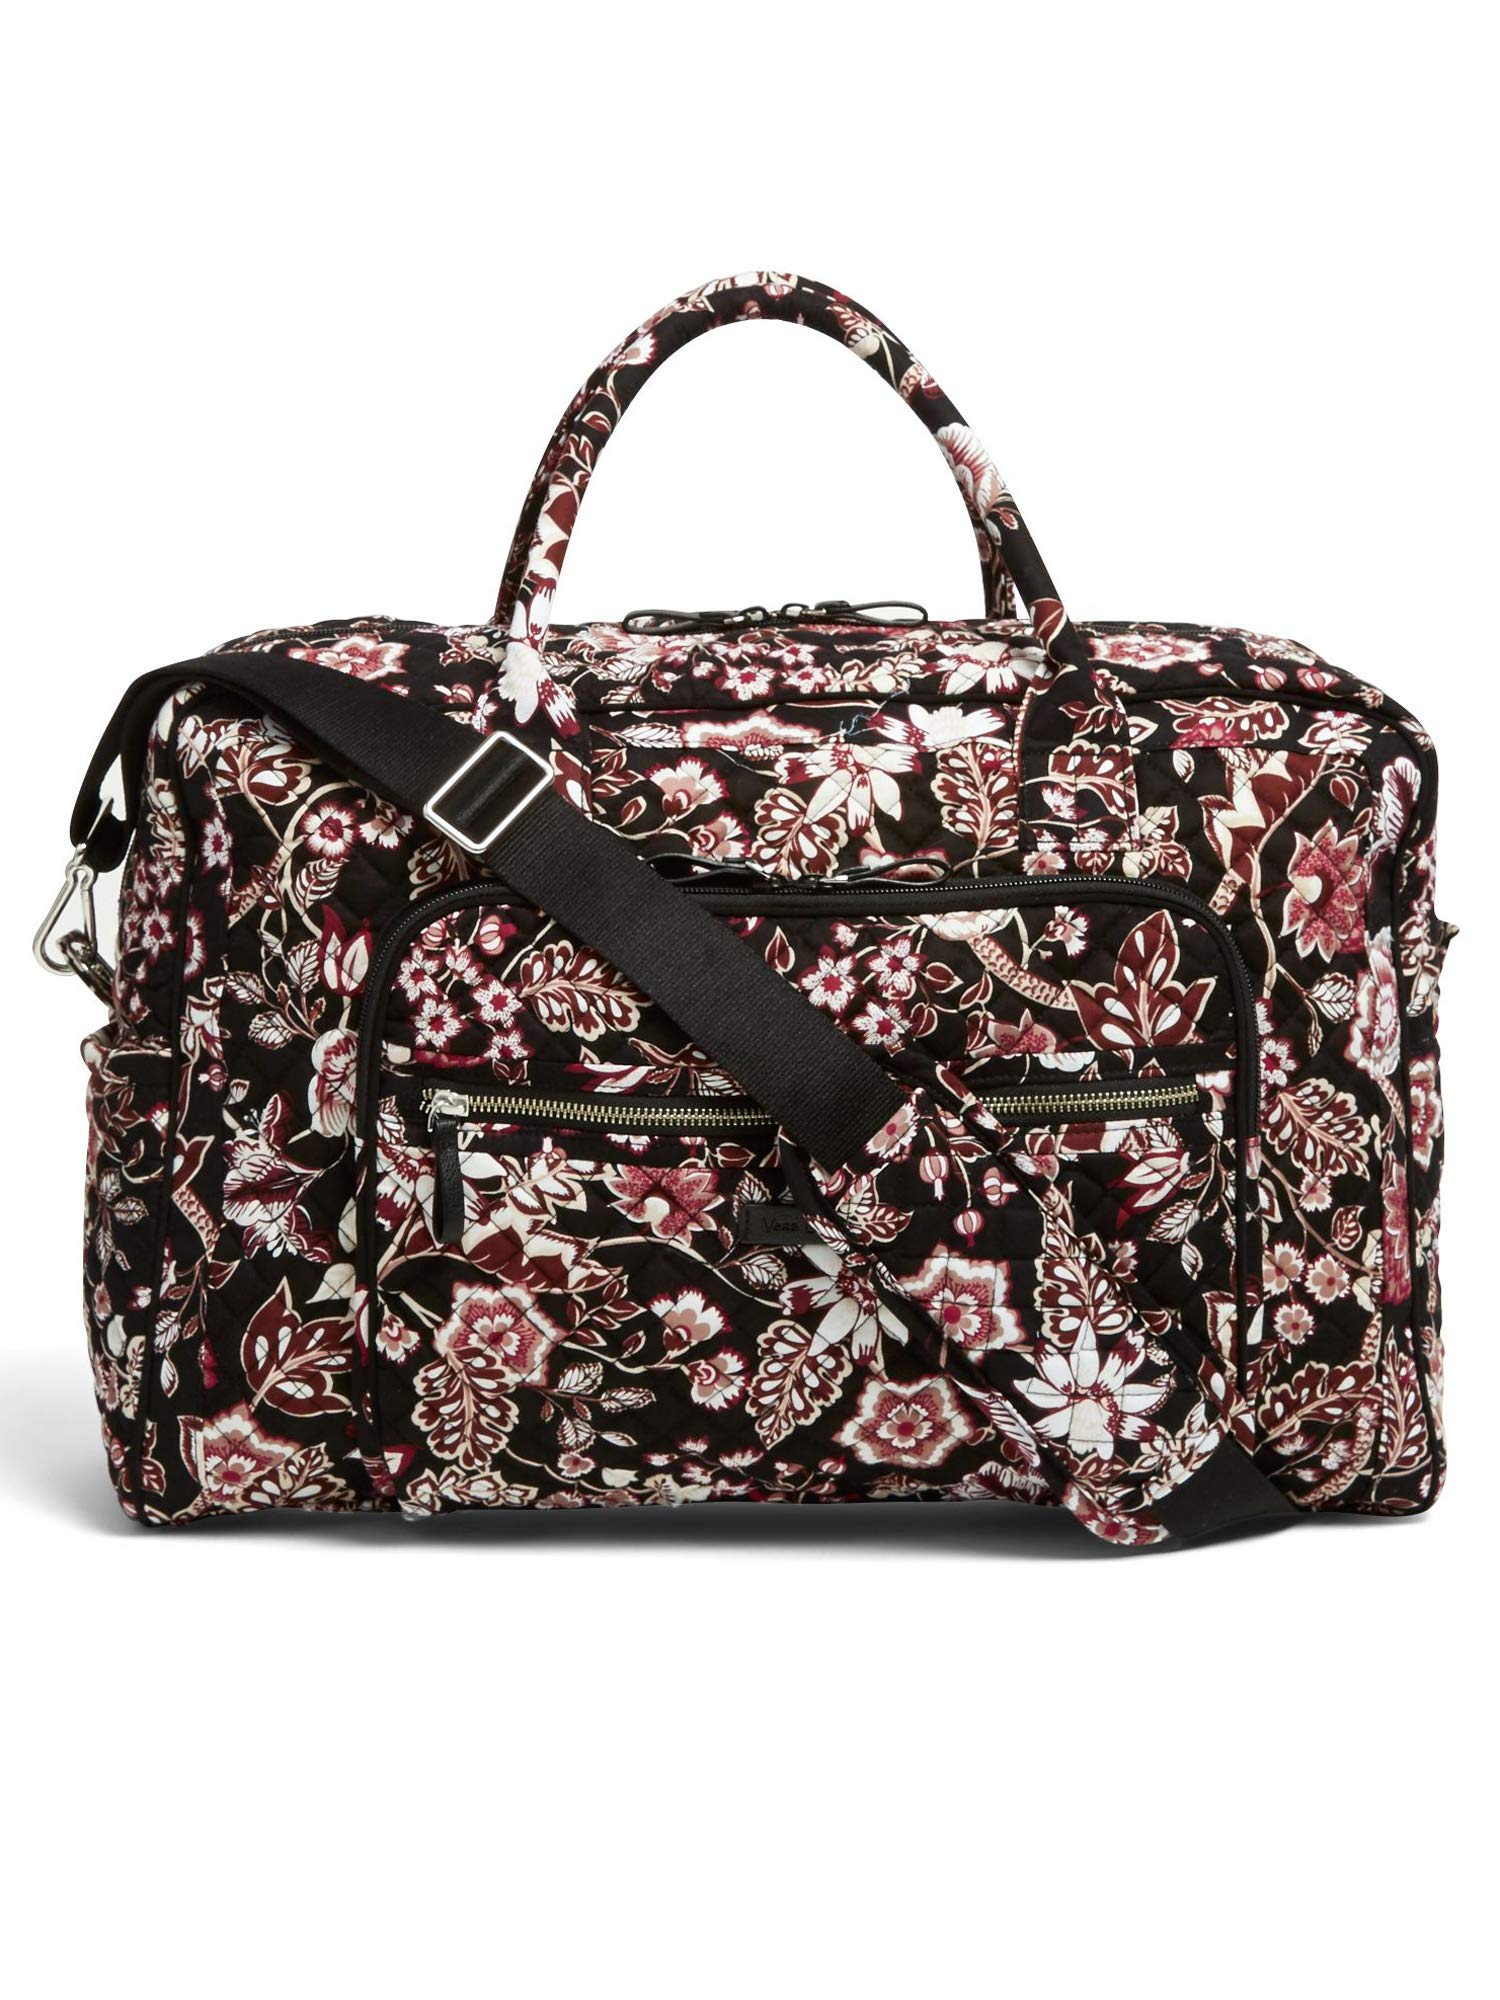 Vera Bradley Iconic Weekender Travel Bag, Signature Cotton, Desert Floral (Black/Vines Floral Neutral) by Vera Bradley (Image #3)